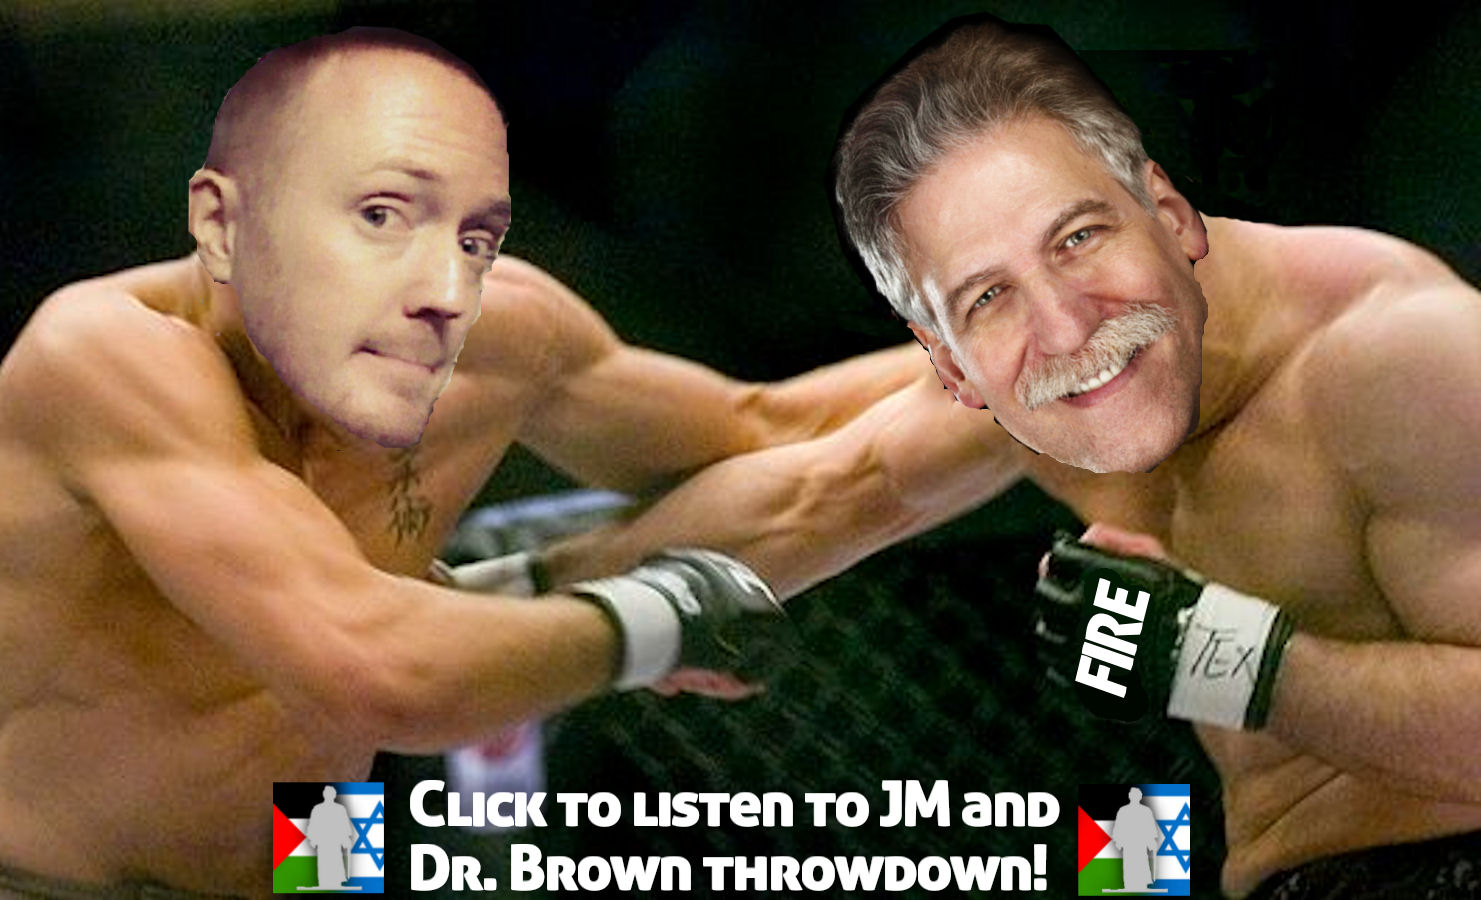 jmdrbrownthrowdown